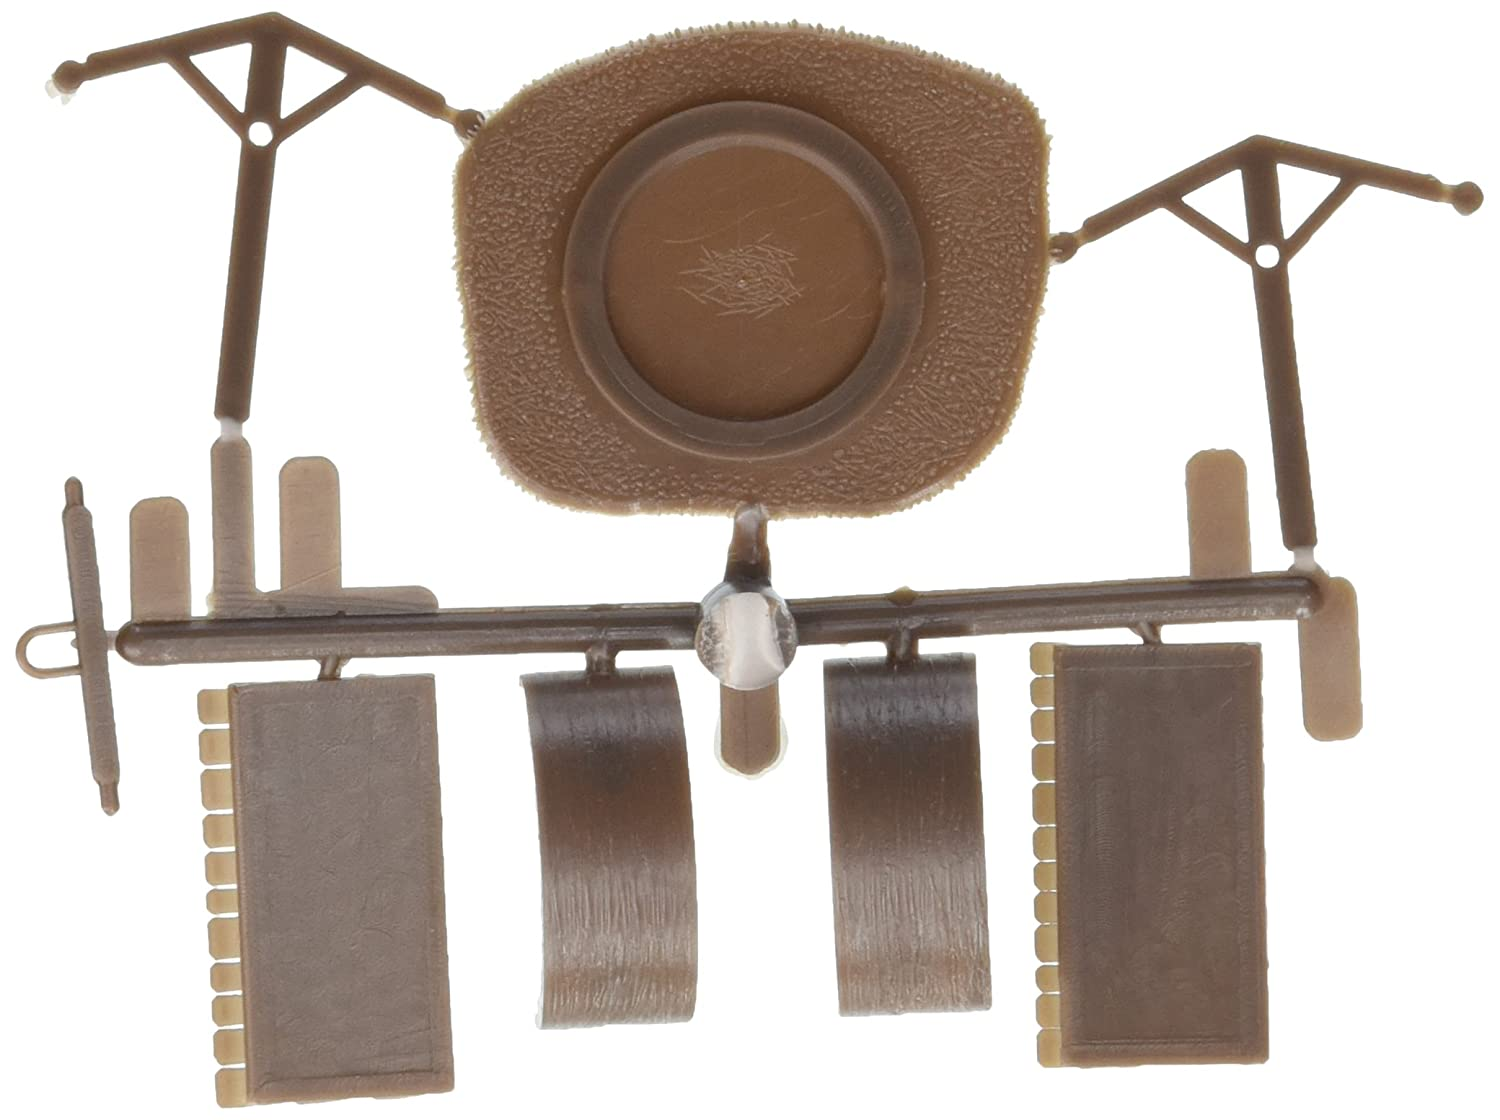 FALLER GmbH Faller 180947 Draw-Well Scenery and Accessories Gebr